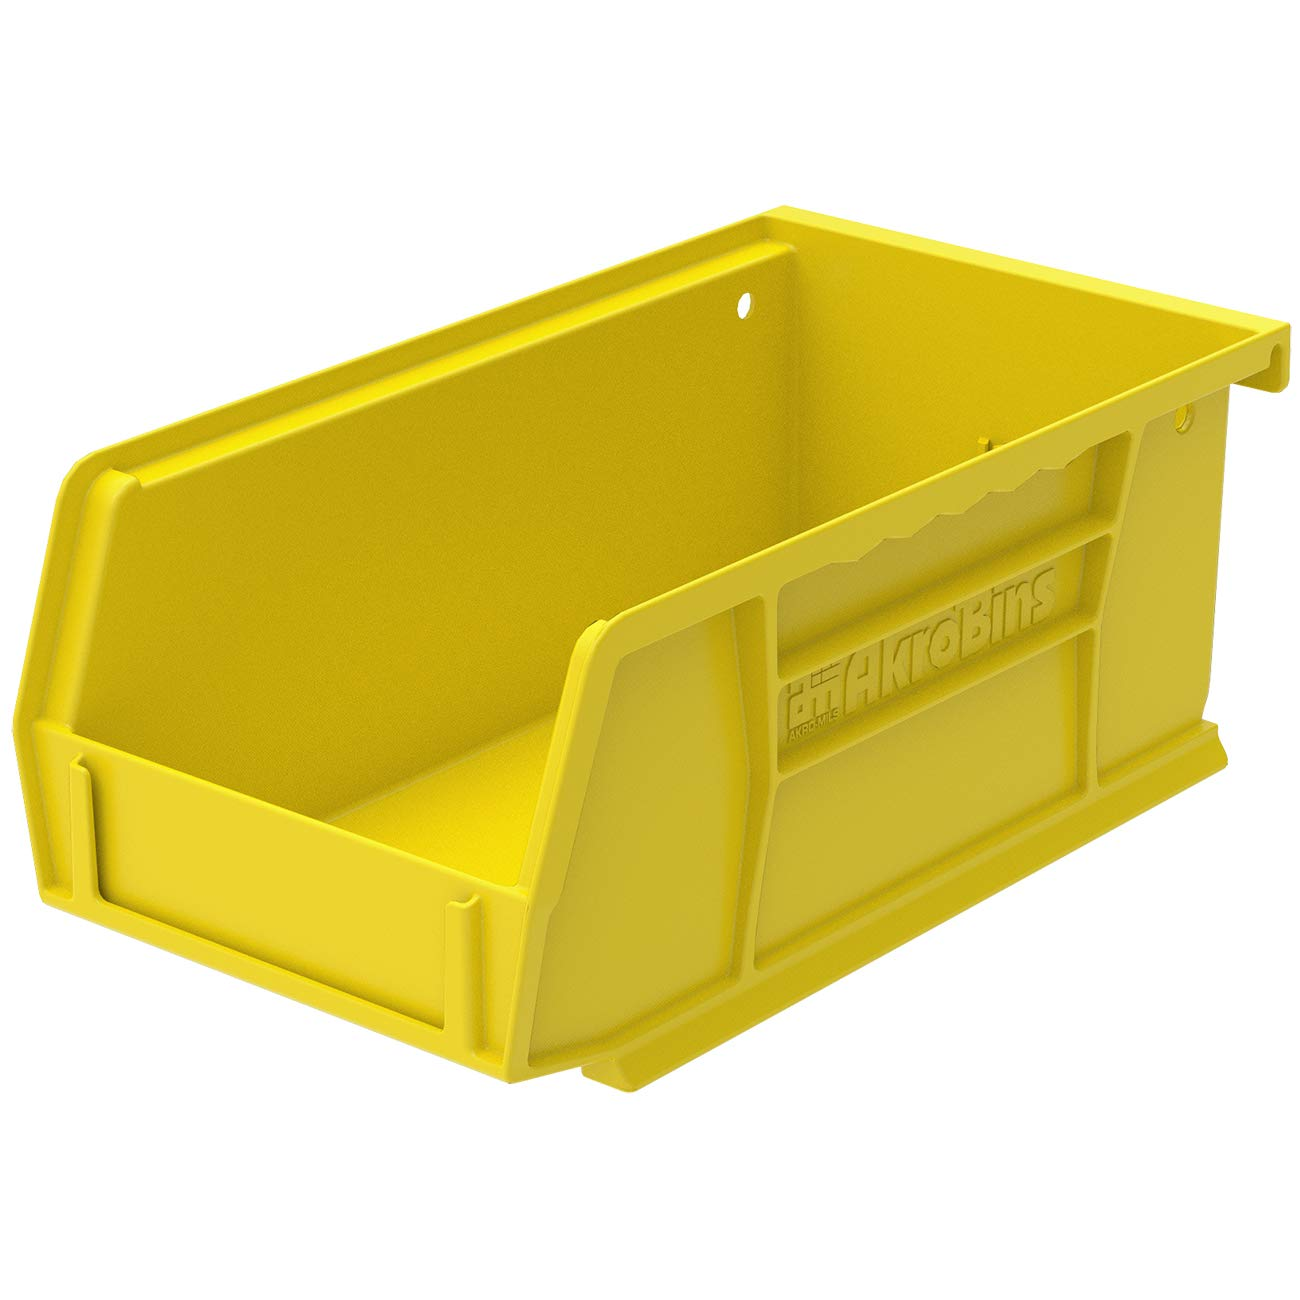 Akro-Mils 30220YEL AkroBins Plastic Storage Bin Hanging Stacking Containers, (7-Inch x 4-Inch x 3-Inch), Pack of 24, Yellow